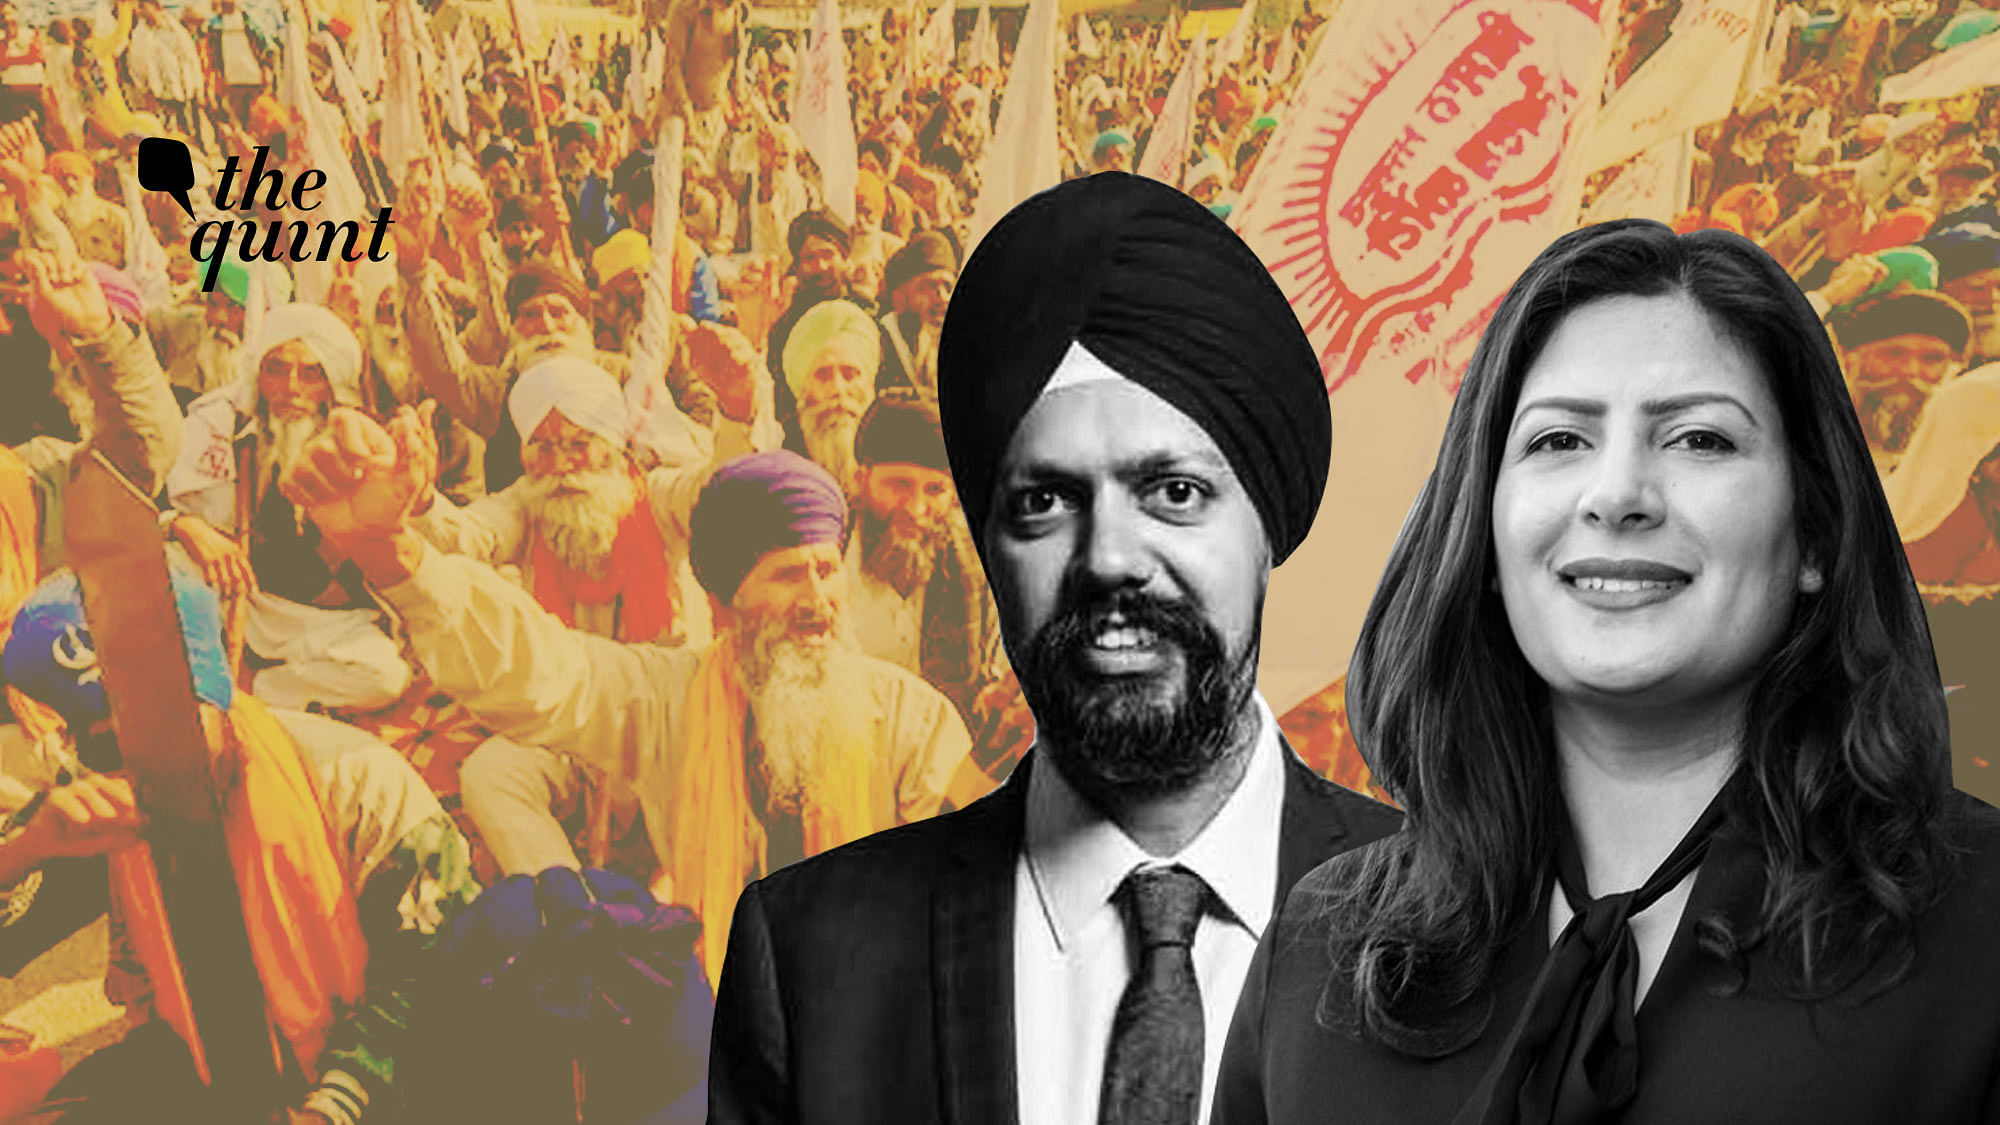 Leaders like Tanmanjeet Singh Dhesi and Preet Kaur Gill from UK, Jagmeet Singh from Canada have come out in support of protesting farmers.